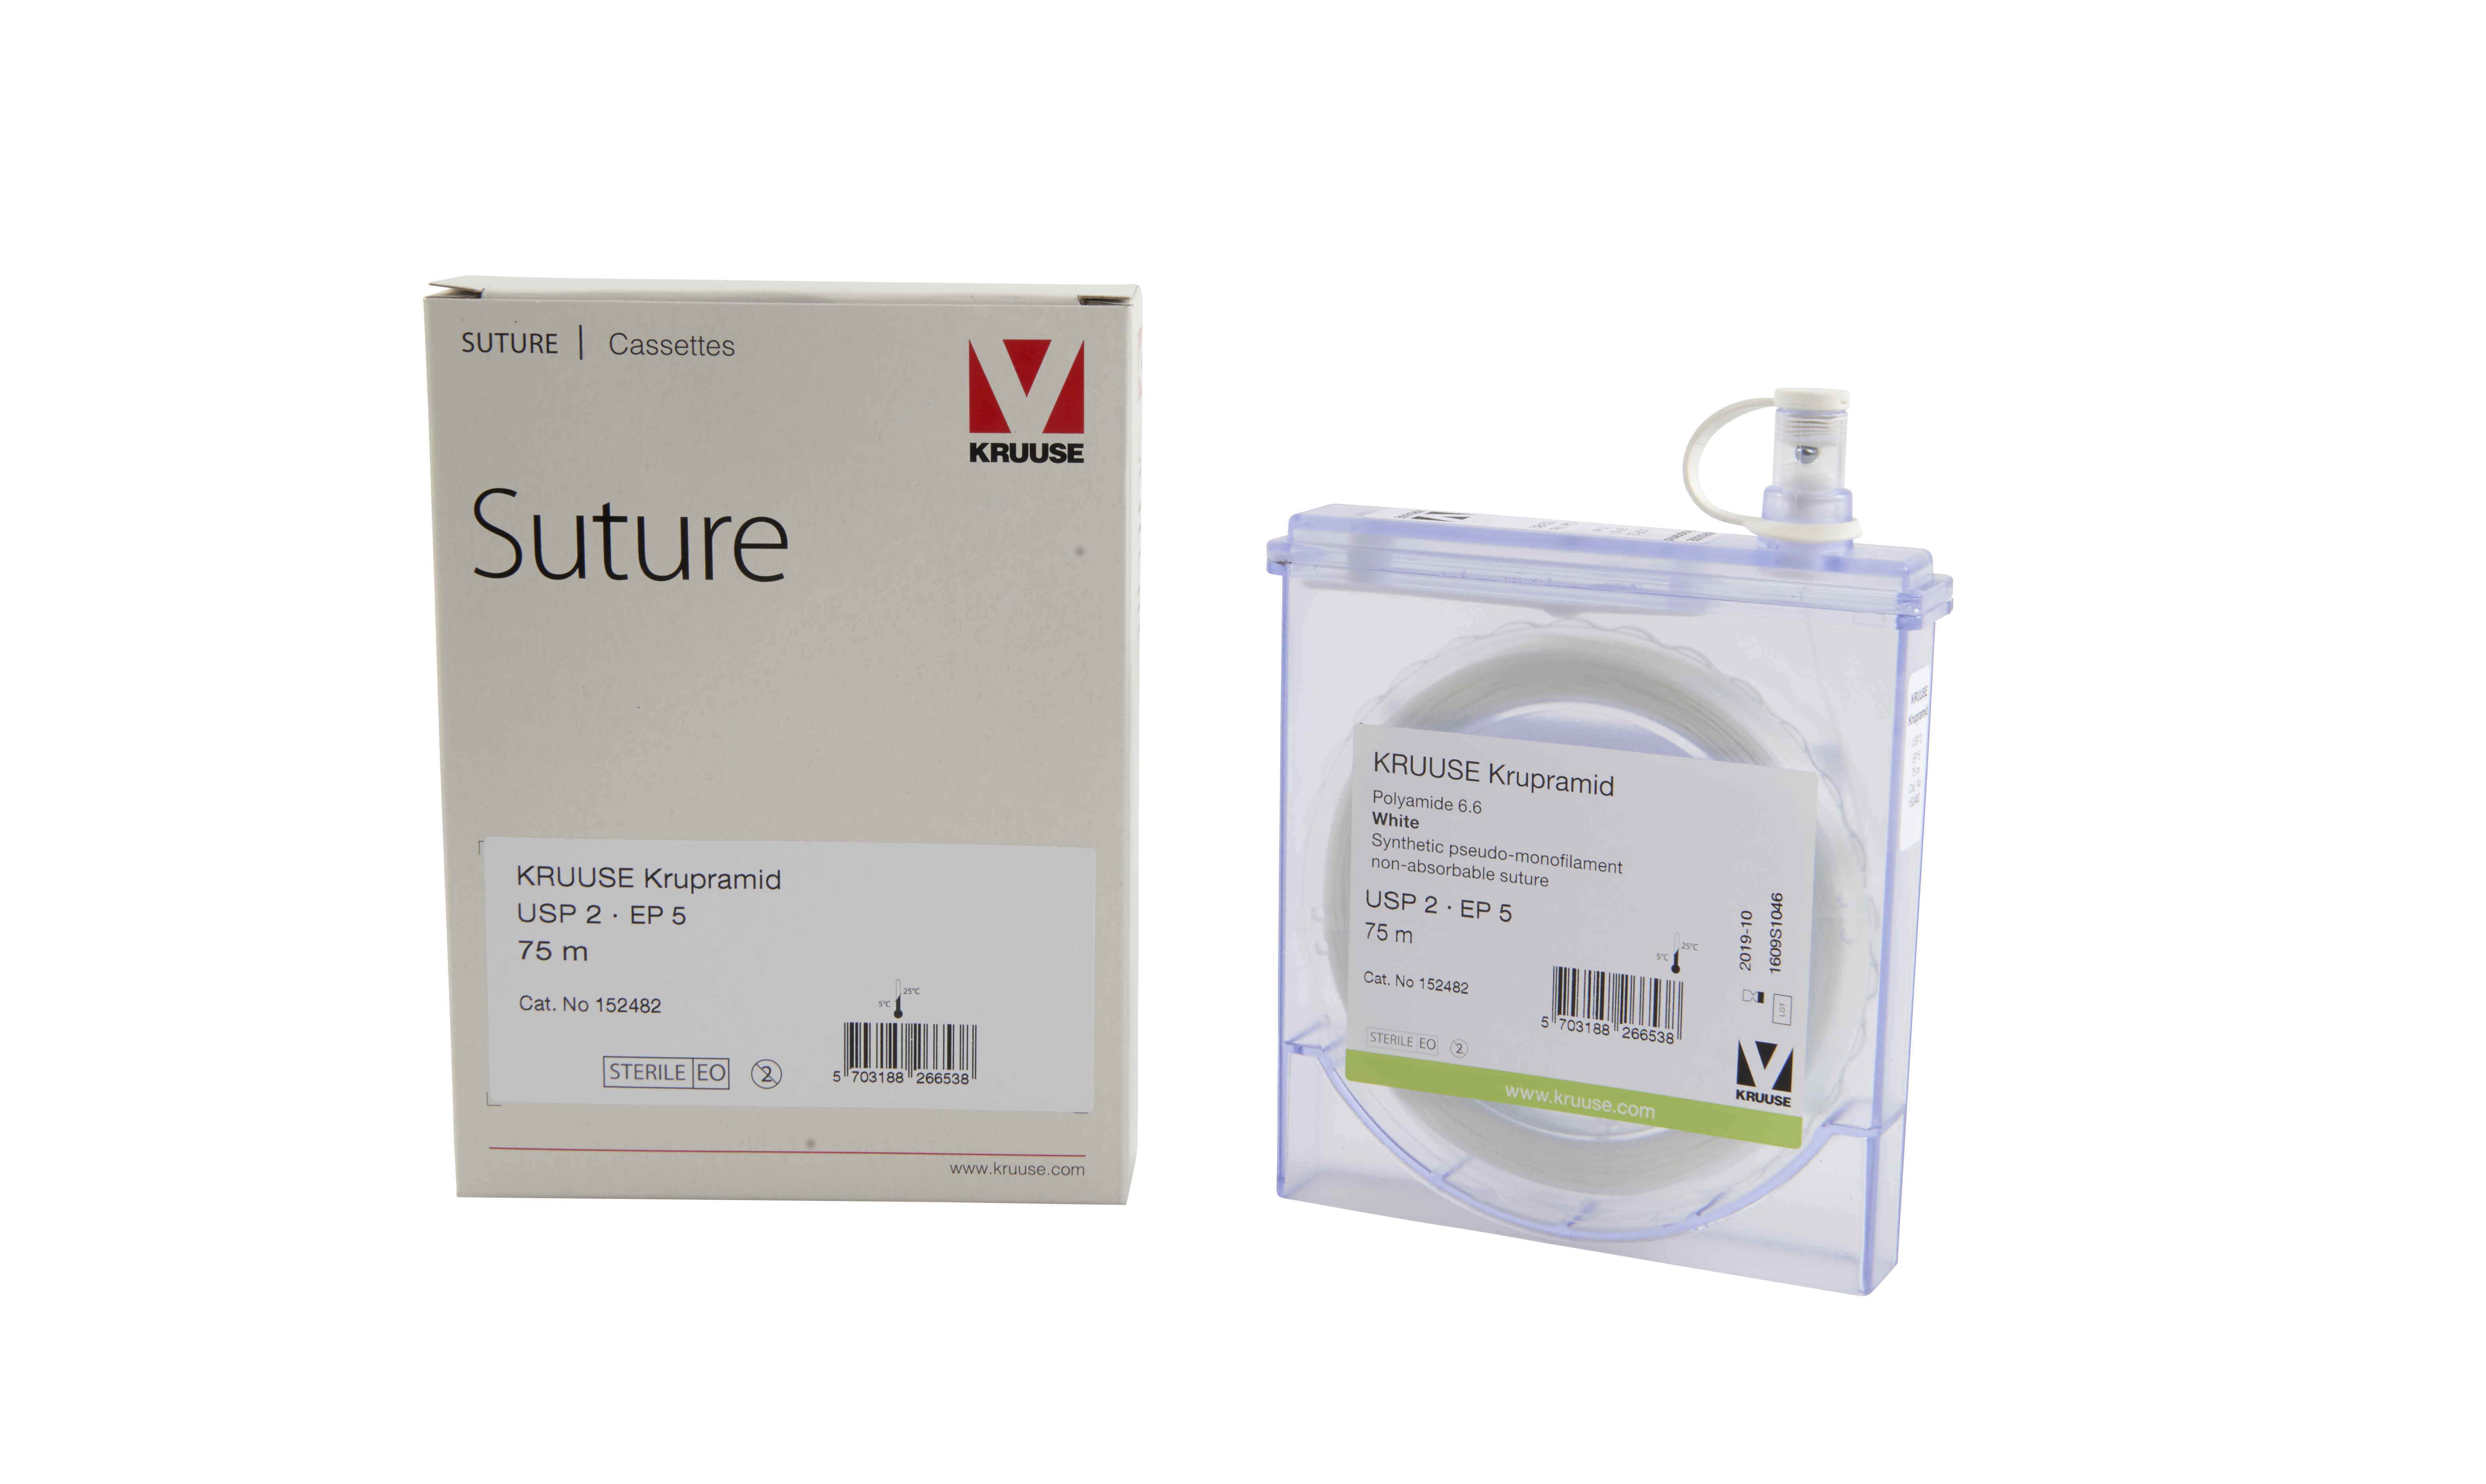 KRUUSE Krupramid suture, USP 2, 75 m